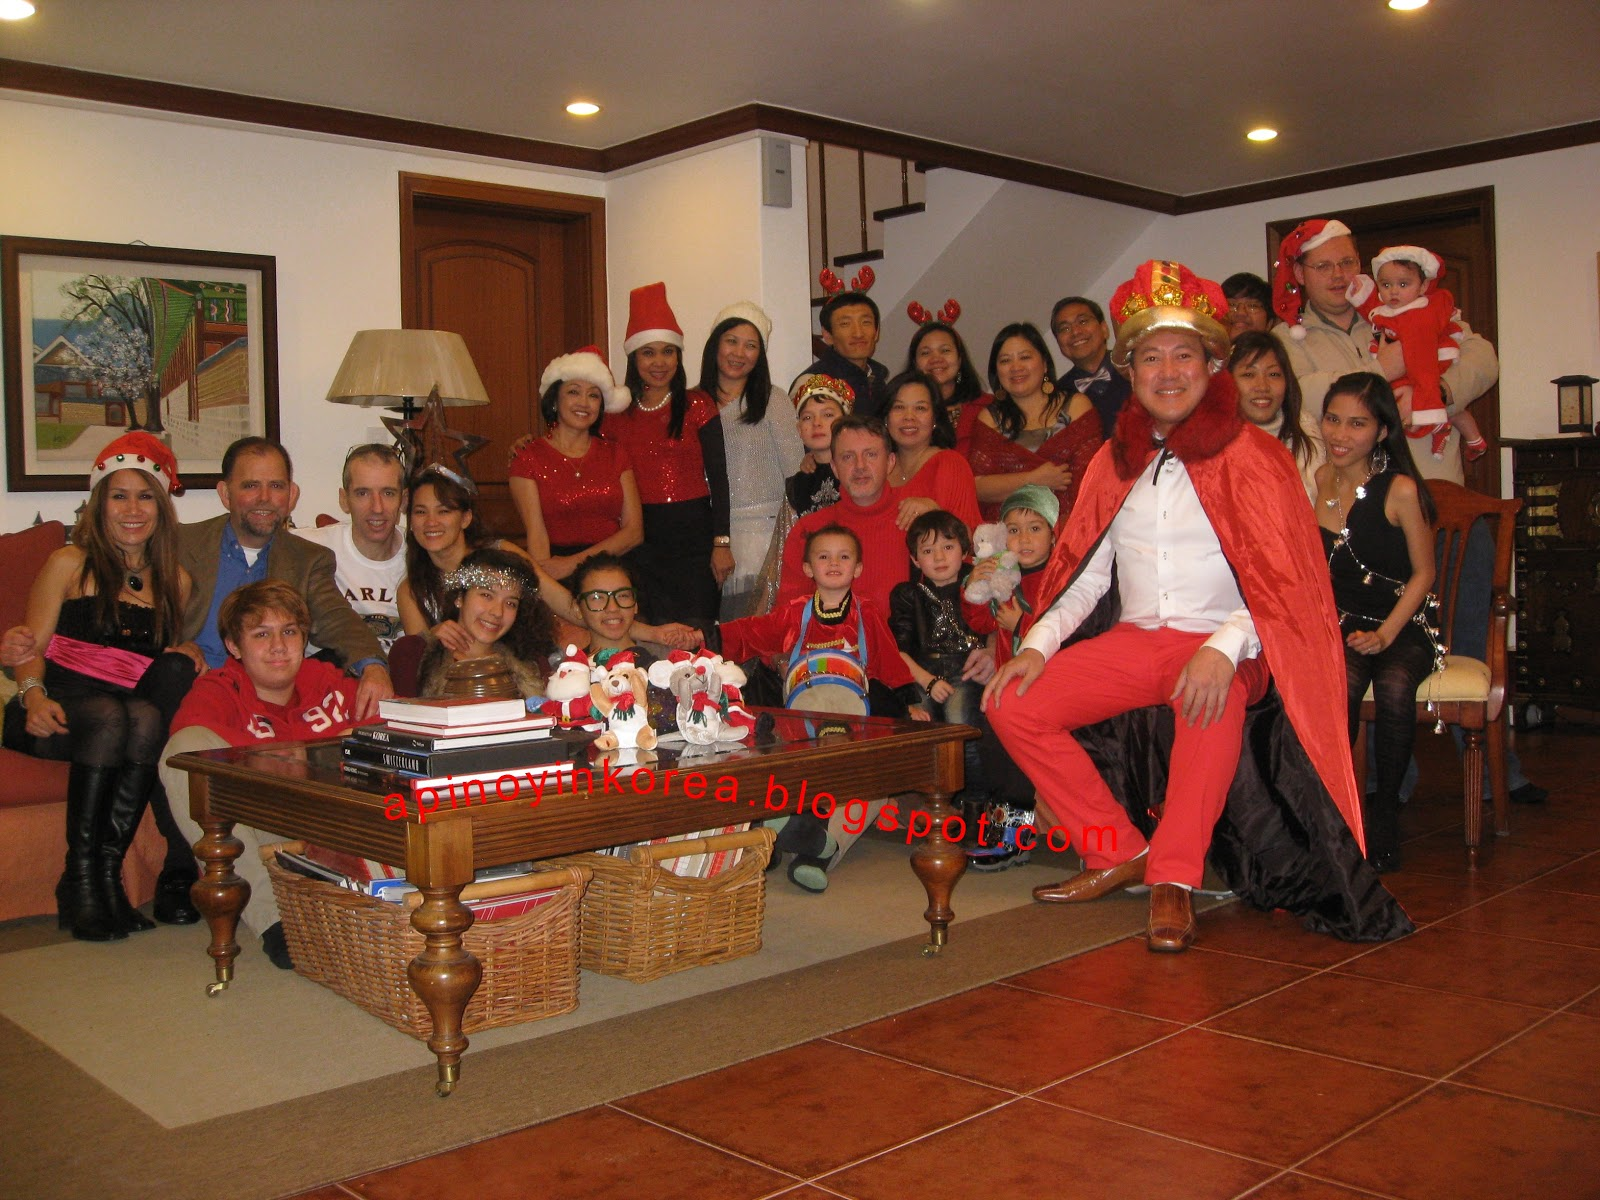 A Pinoy in Korea: Our 2012 Merry Christmas Party In Seoul!